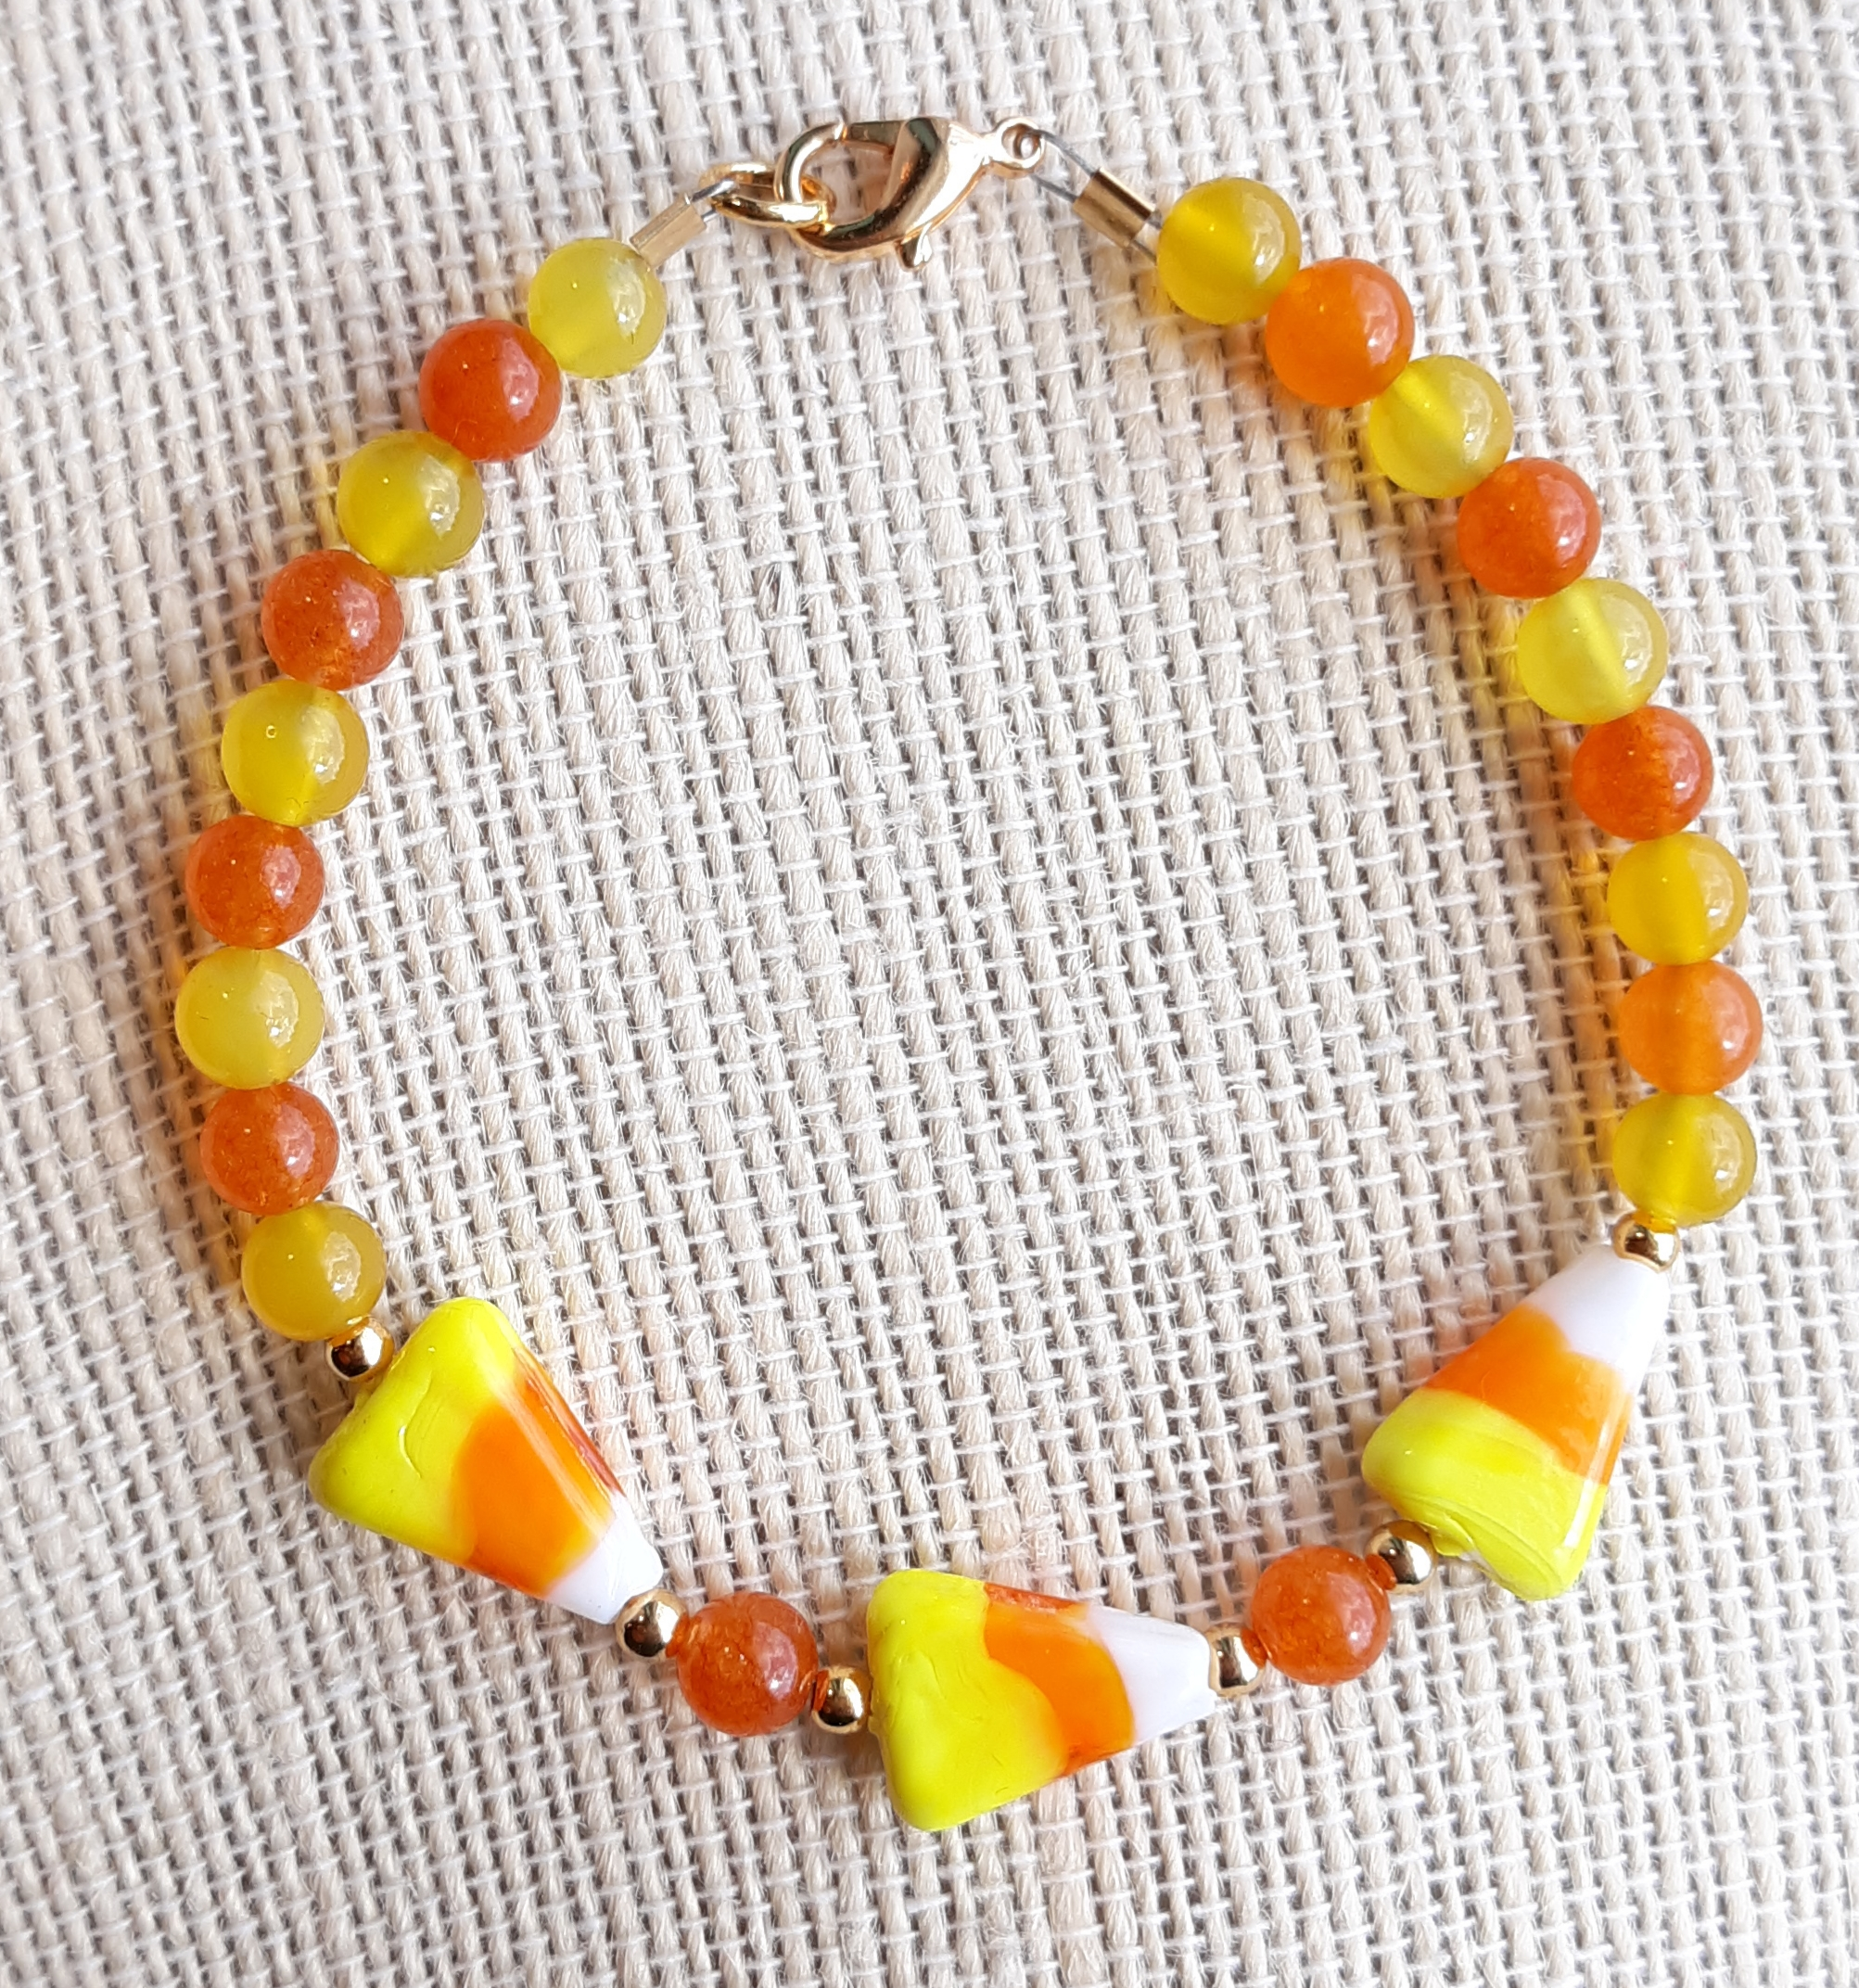 816 - candy corn gp ylw agate 7-34